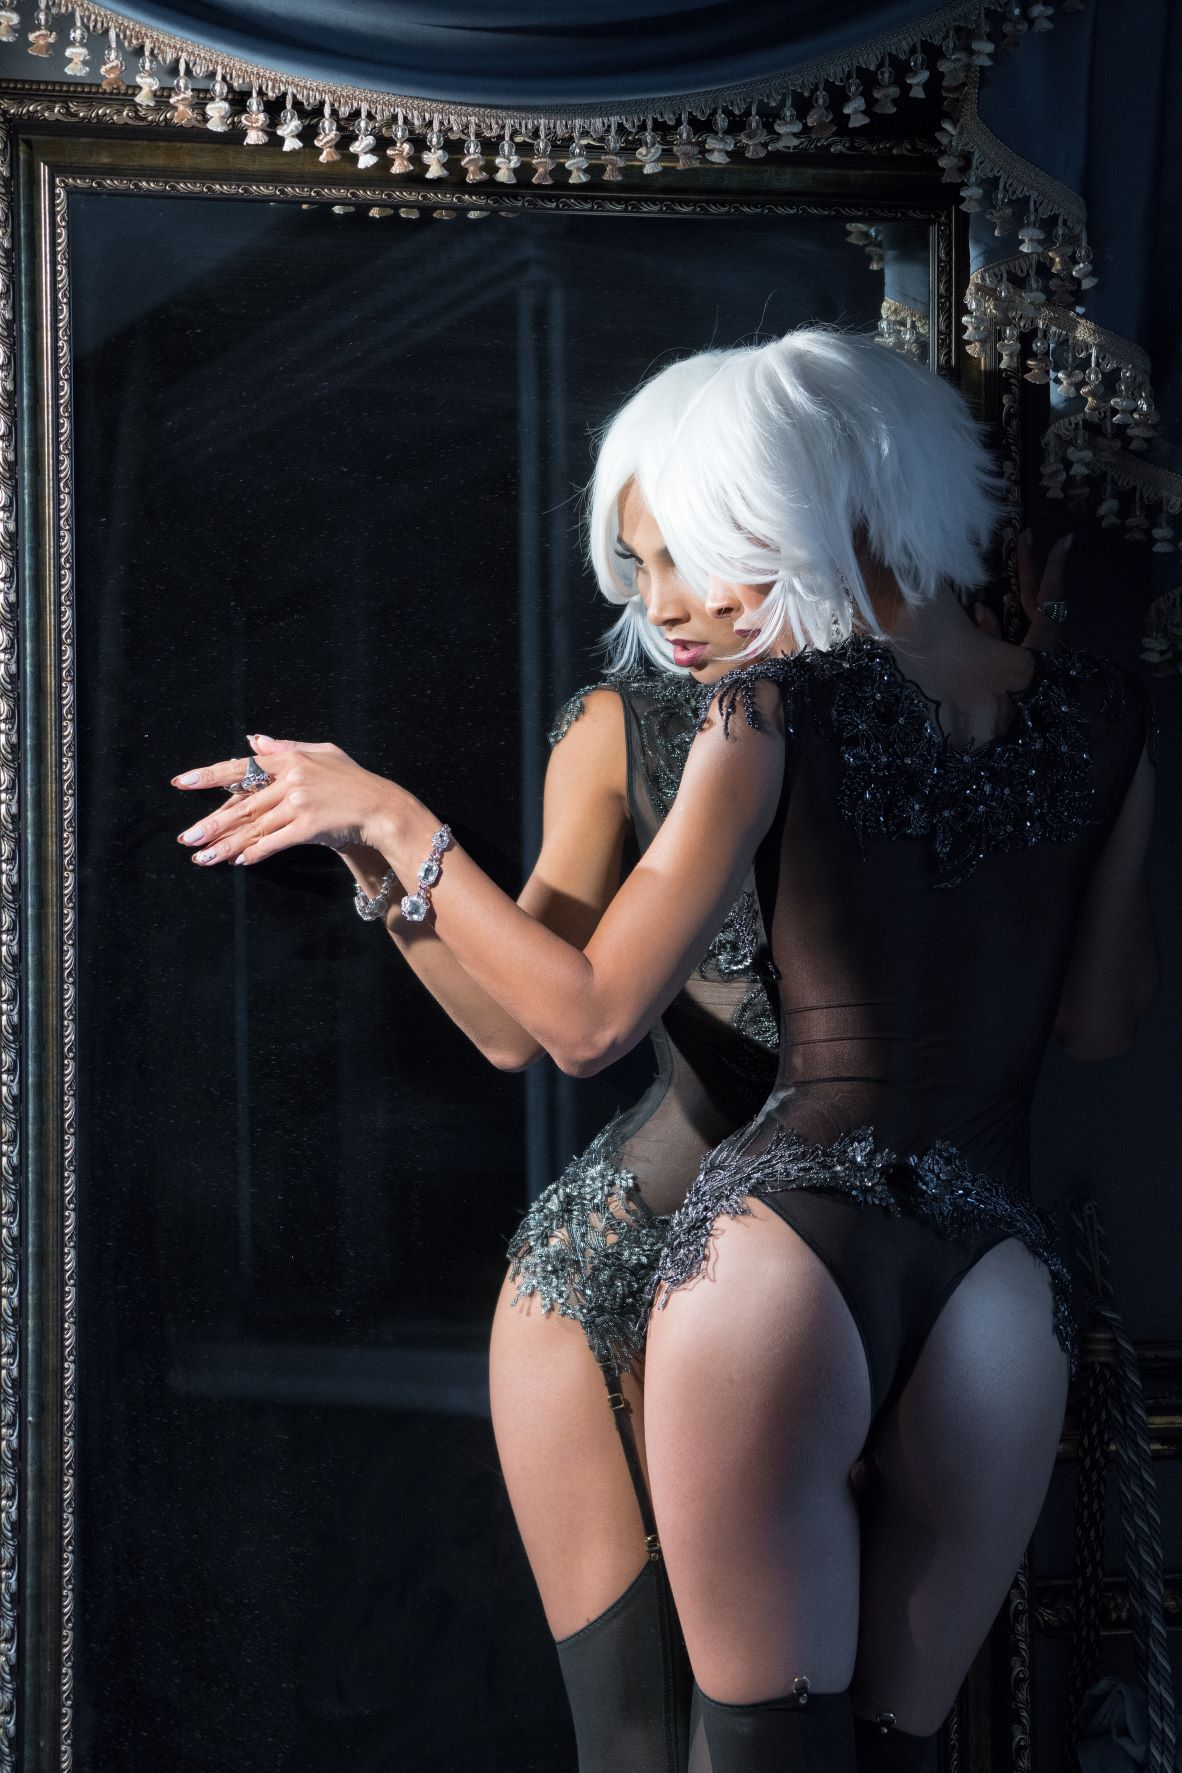 Woman in silver wig wearing lingerie and stockings in mirror